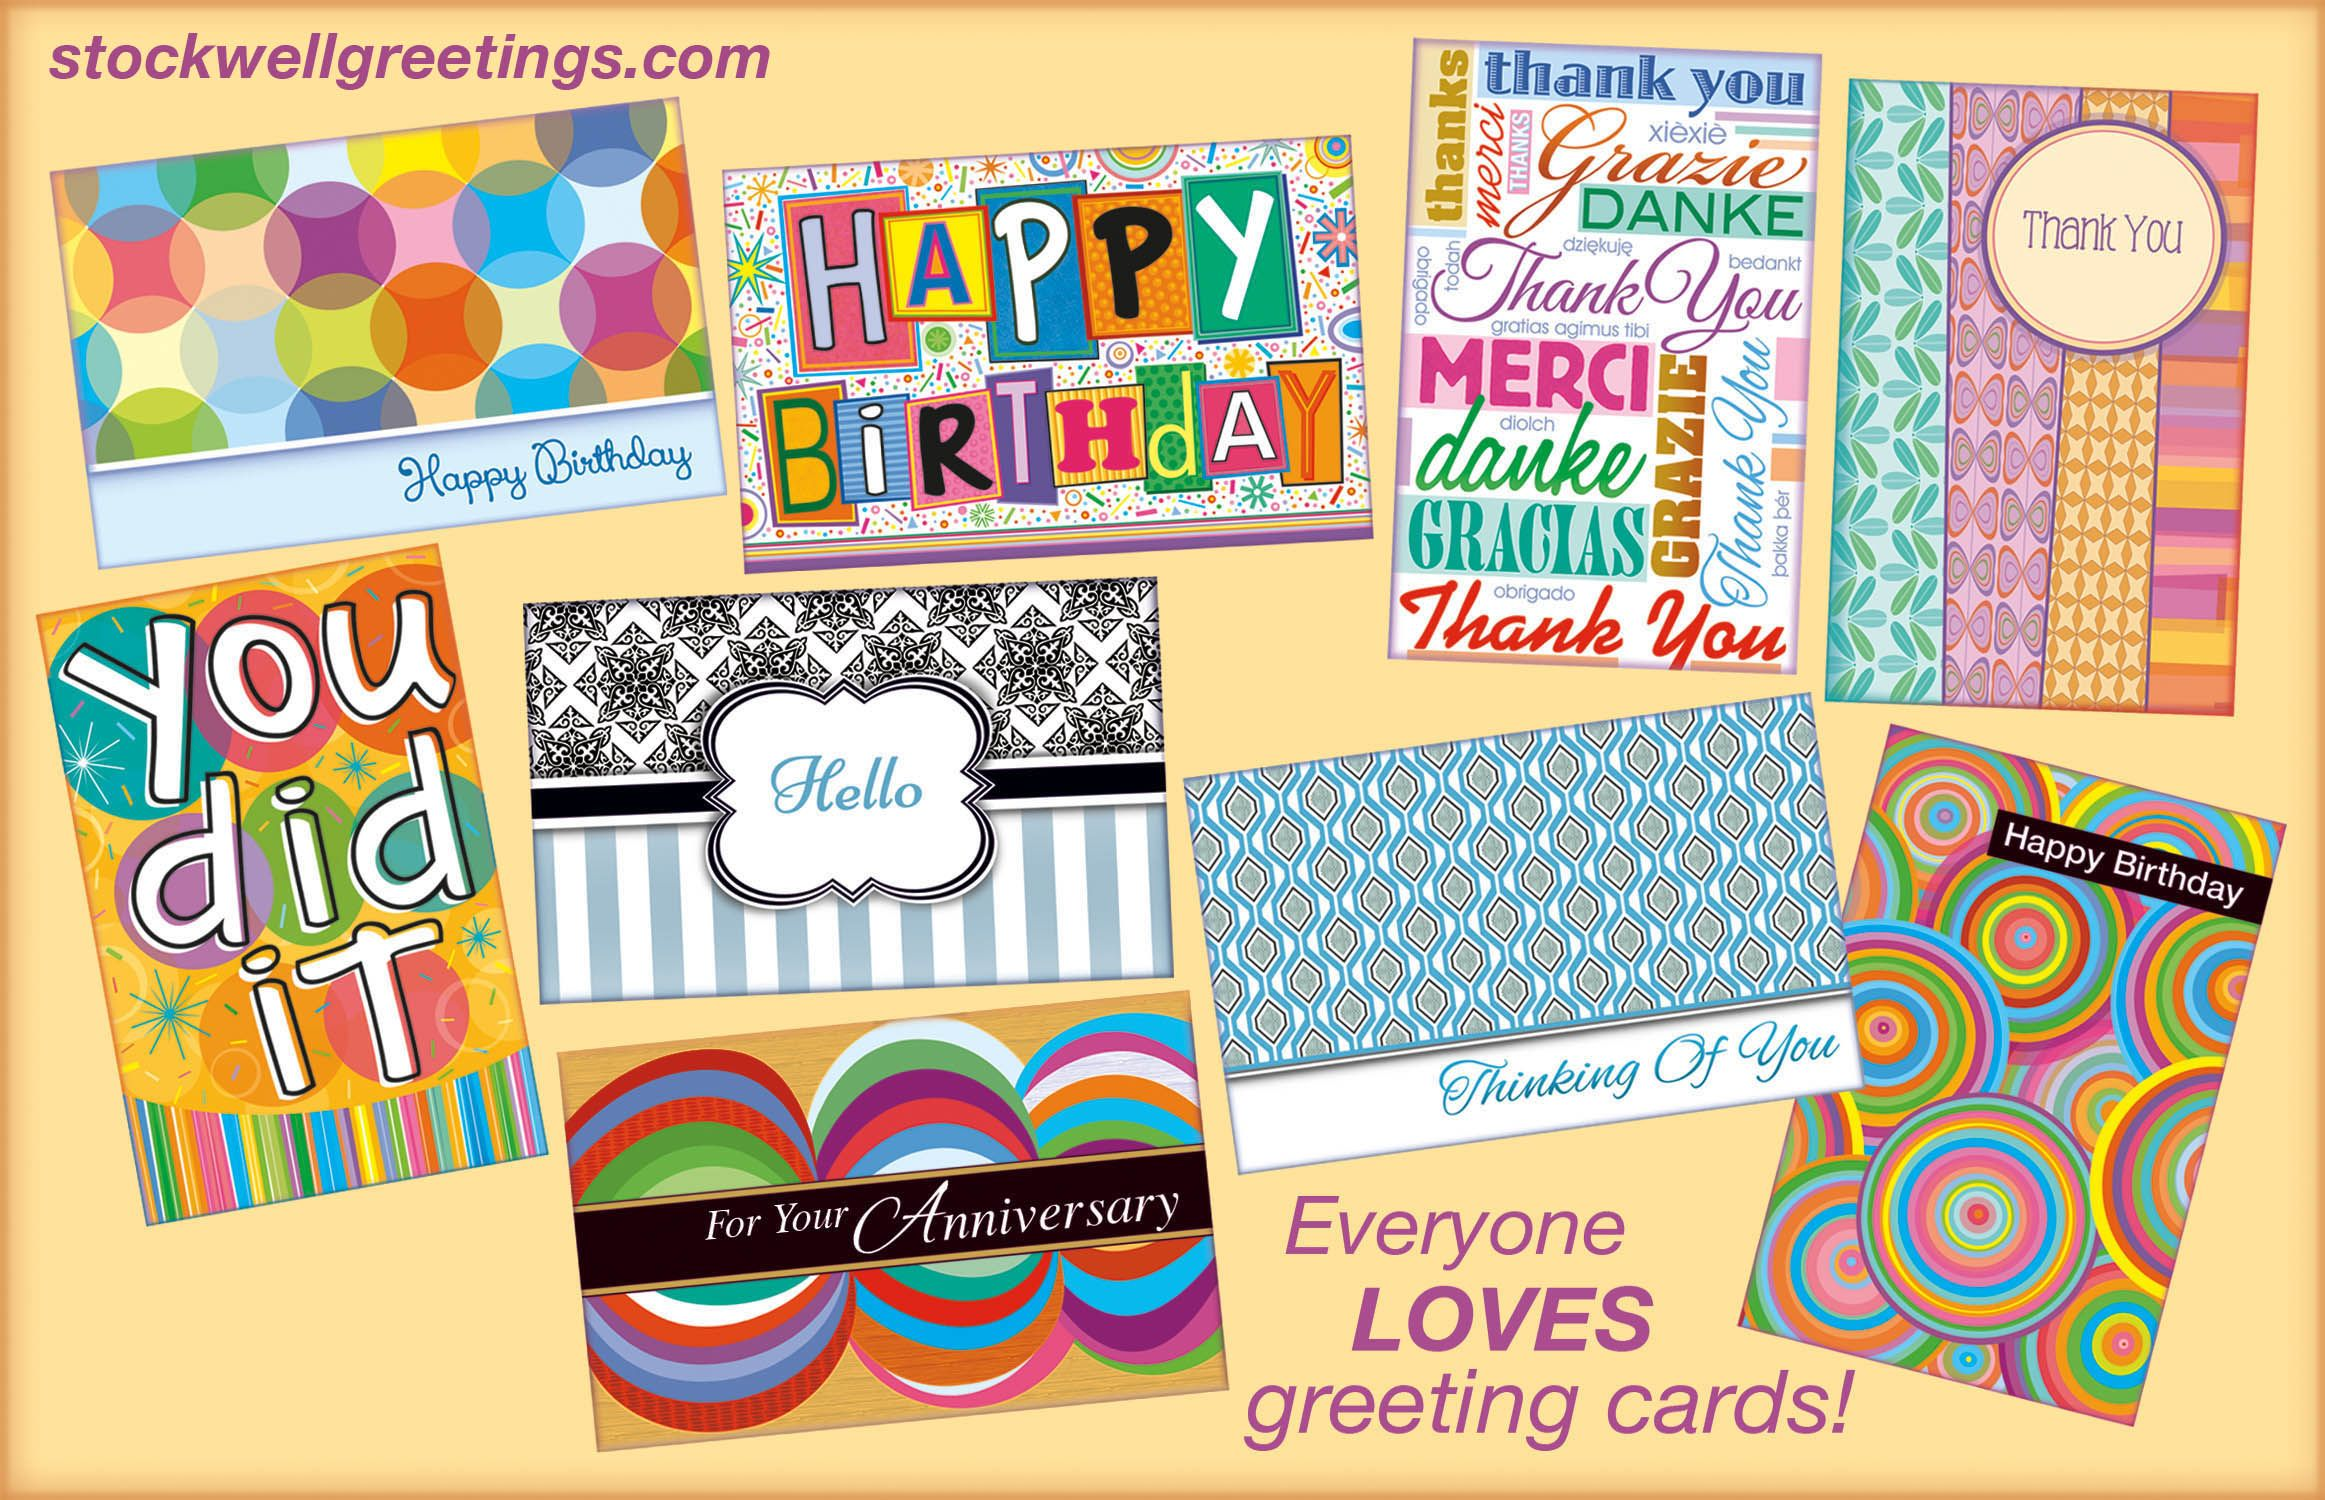 discount-greeting-cards-american-wholesale-greeting-cards.jpg (2325×1500)